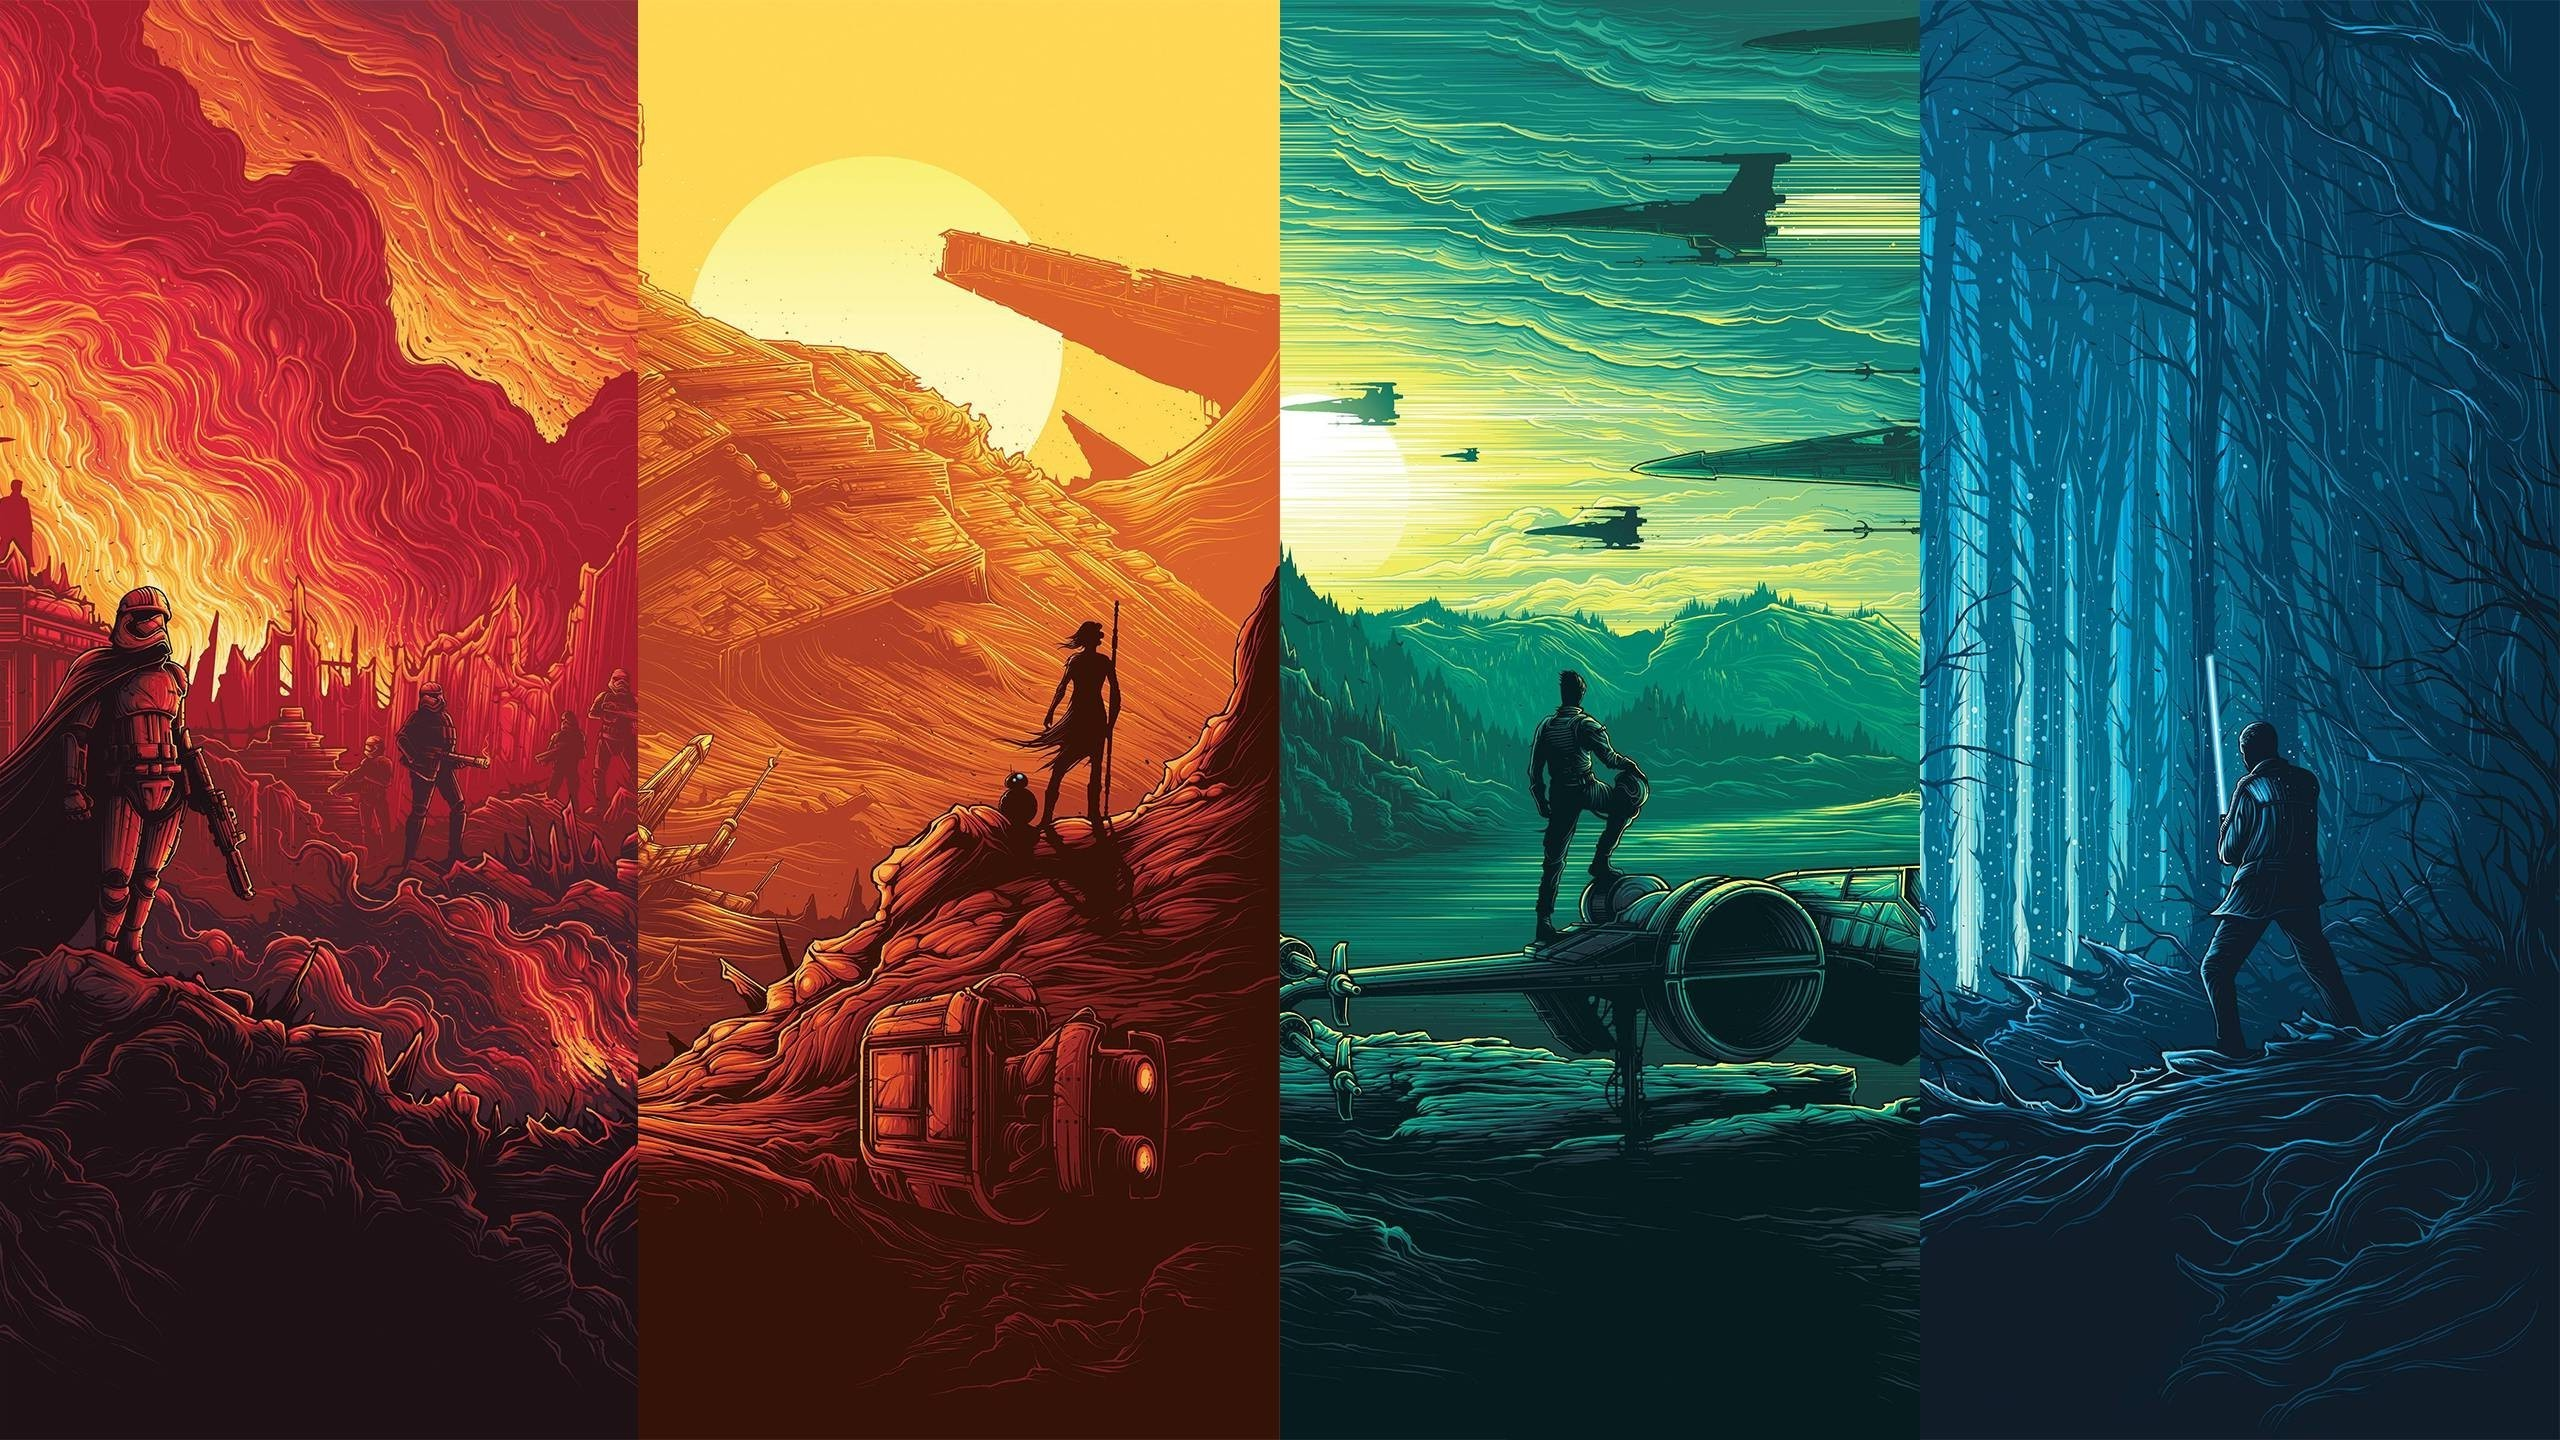 Star Wars Episode 7 Wallpapers 68 Images